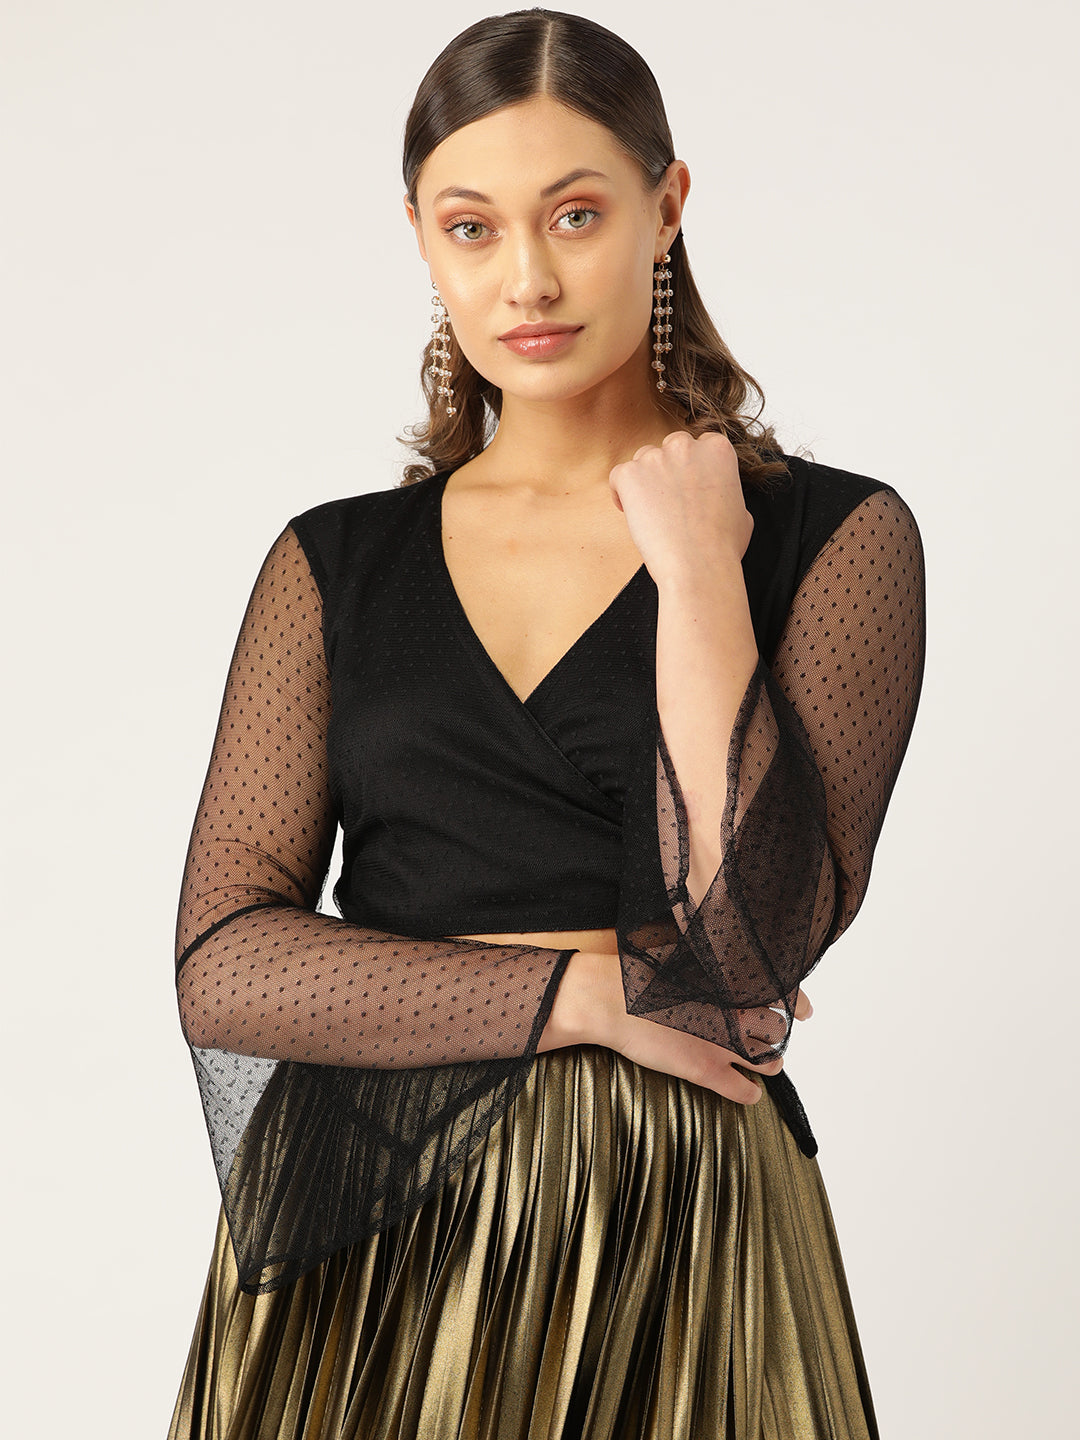 Wraped Lace Black Top